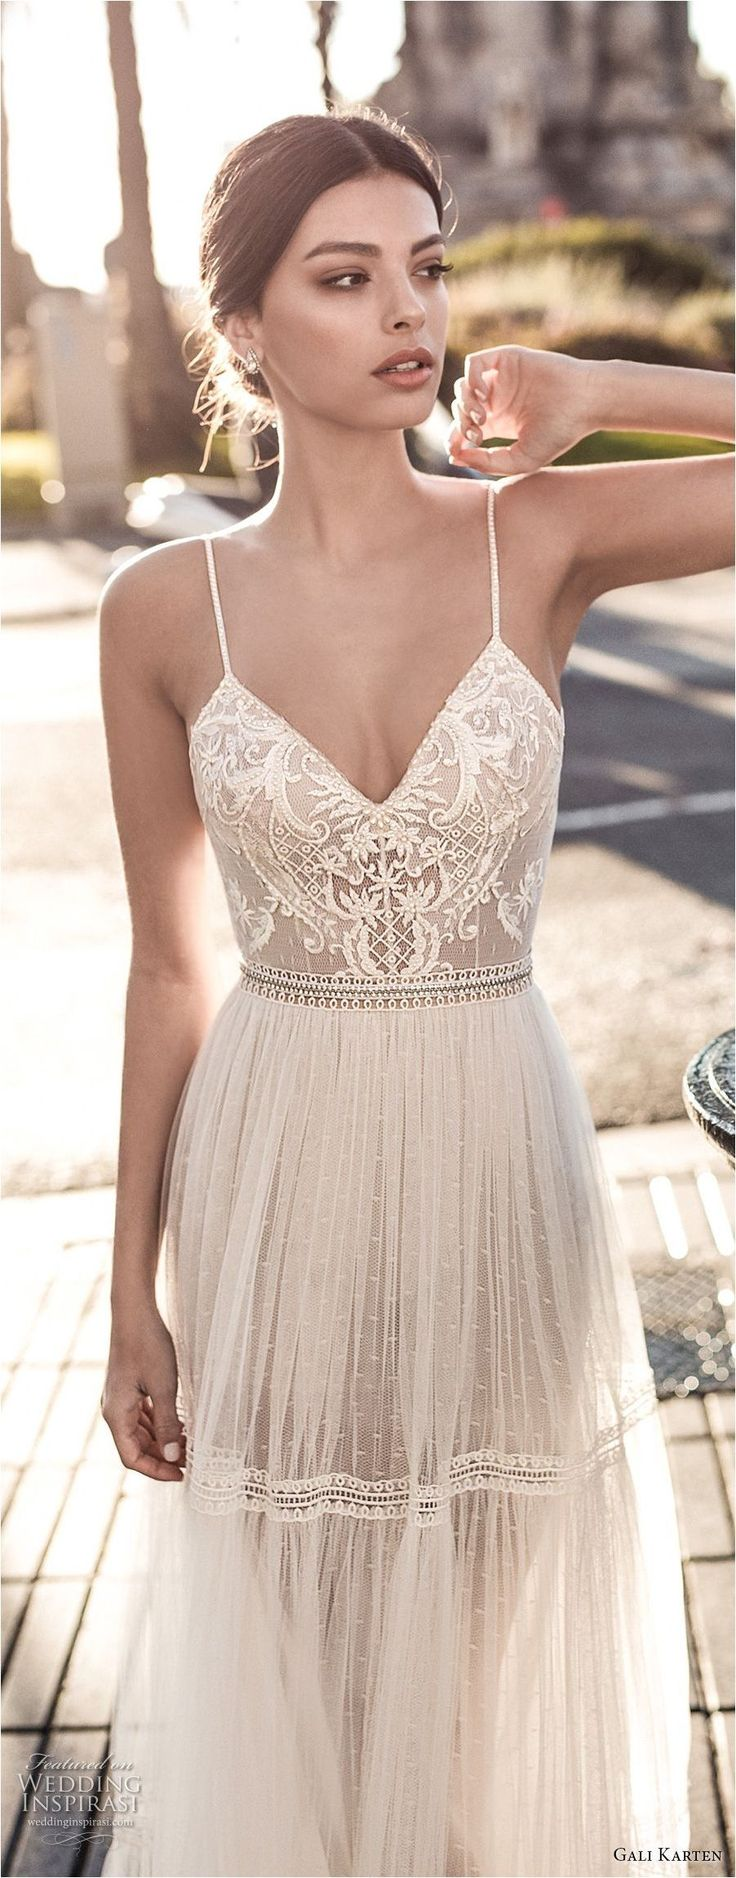 87 best Hochzeit images on Pinterest | Night out dresses, Ball gown ...